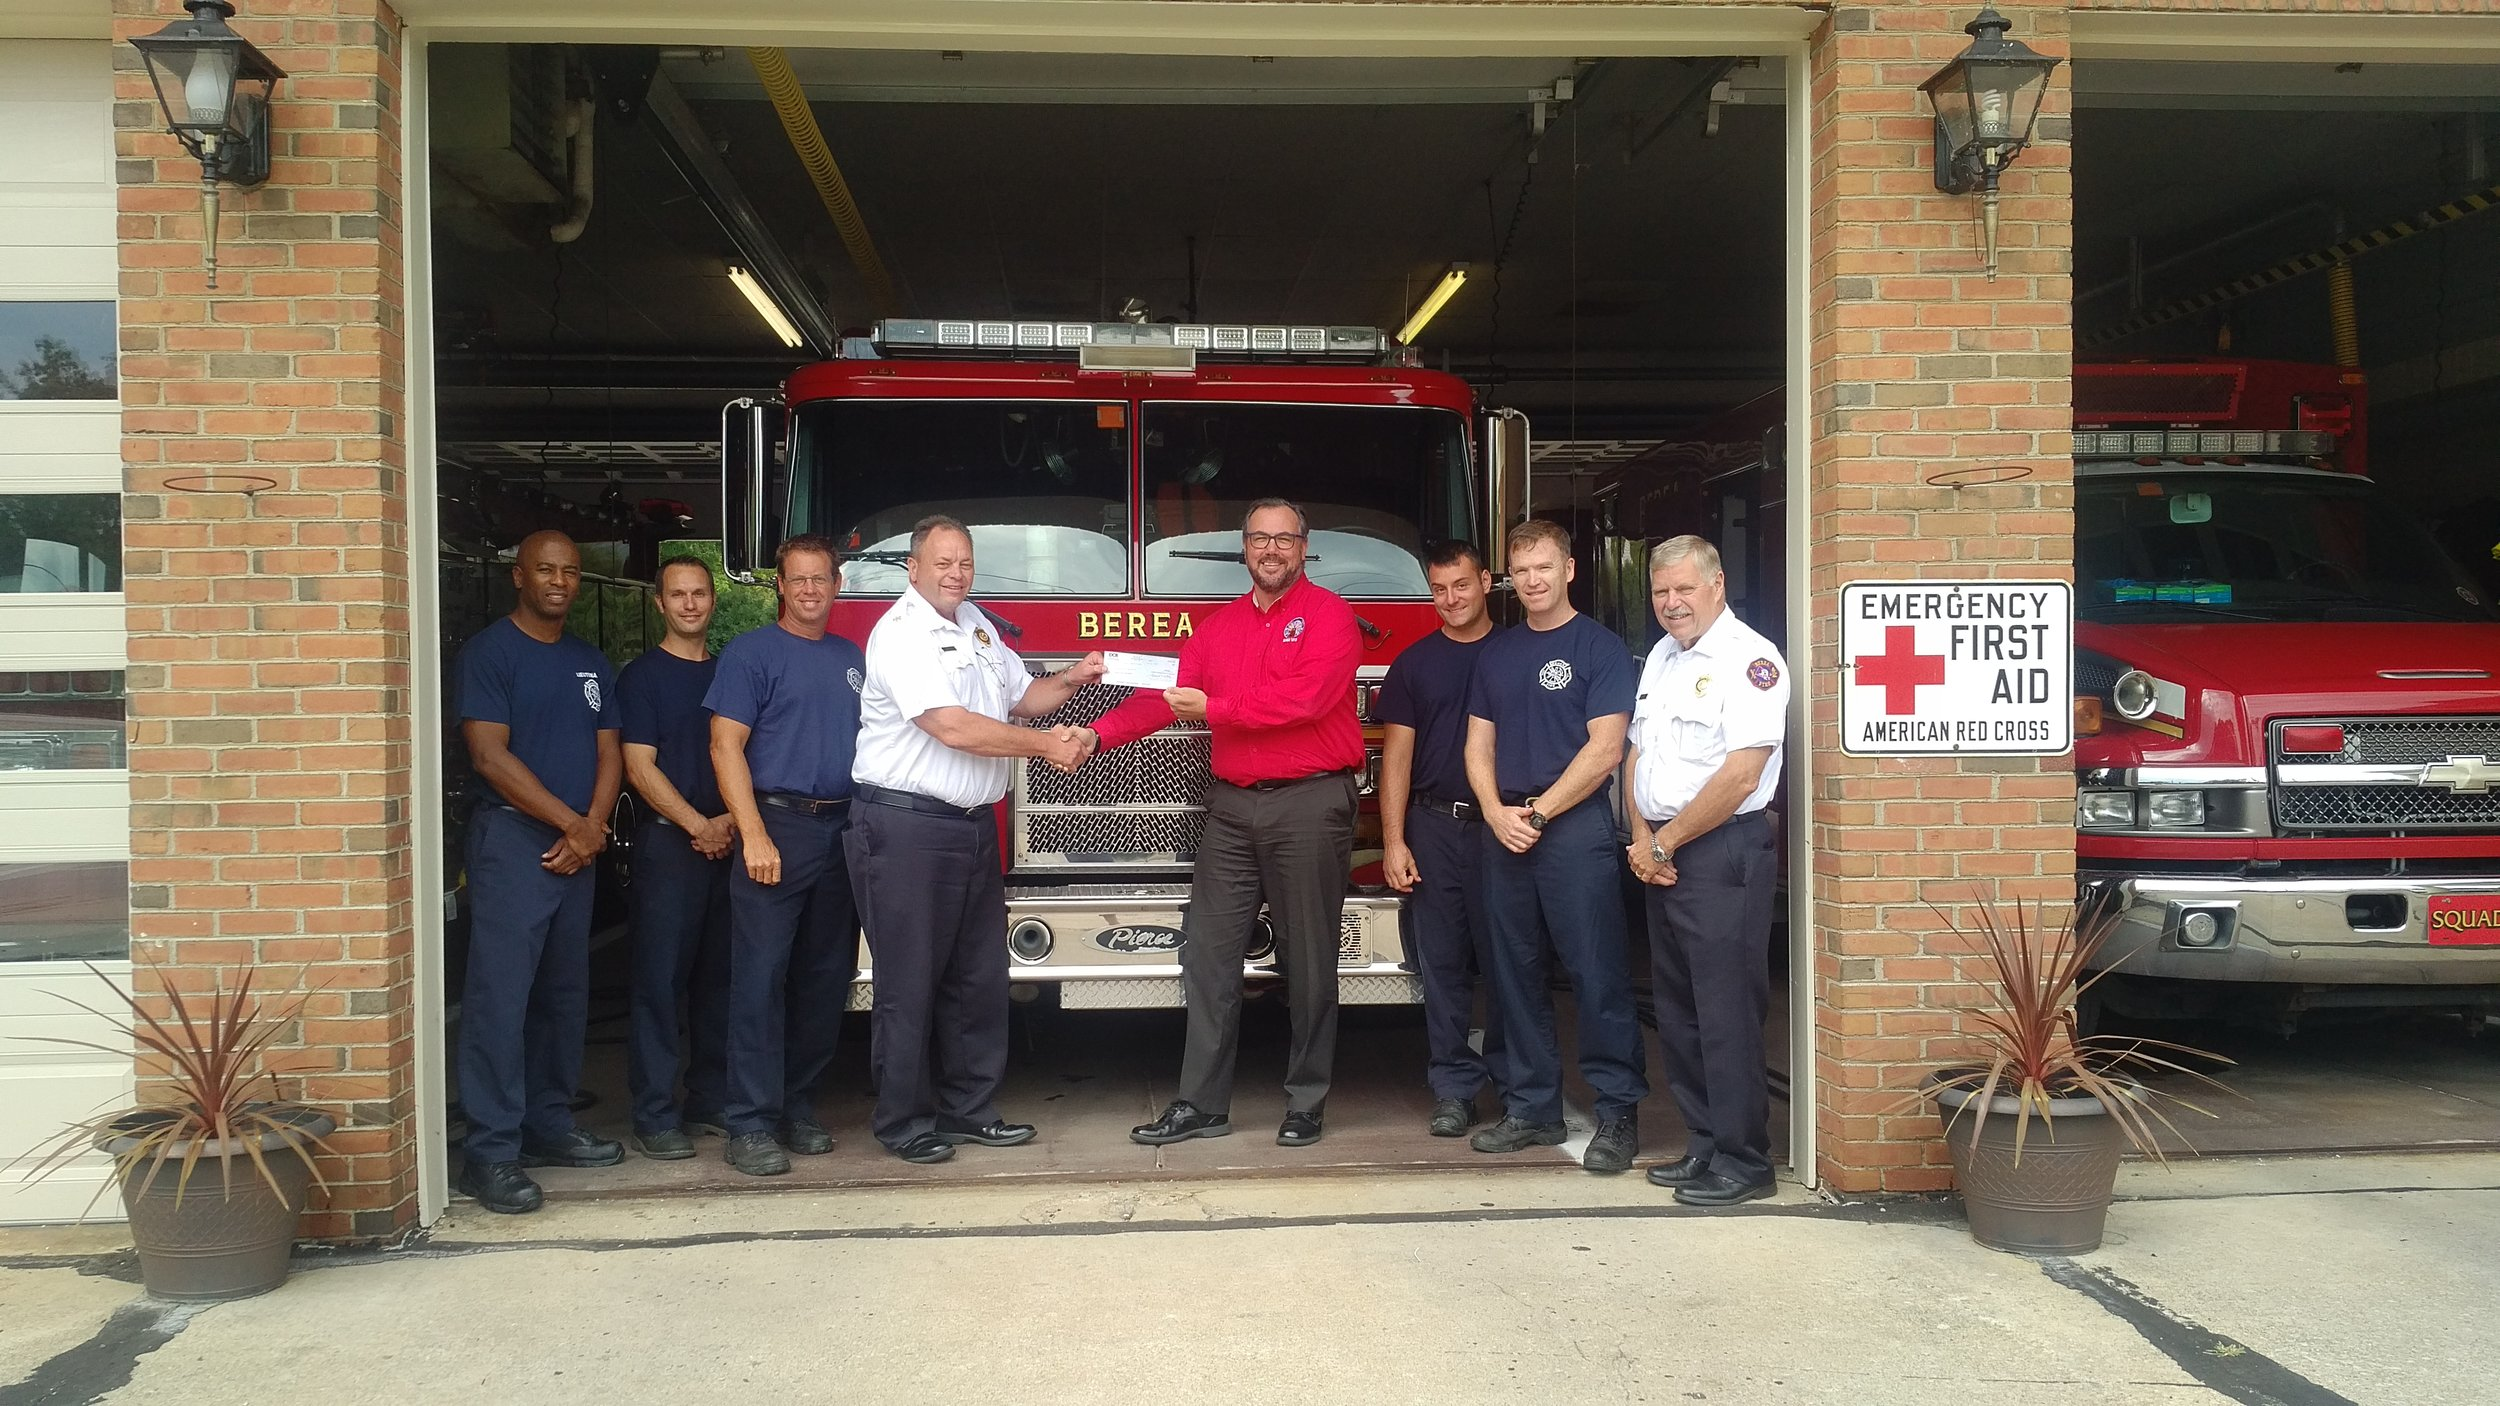 Pictured from left to right, Lt. Williams Phelps, Sr. Firefighter Adam Labuda, Sr. Firefighter Jon West, Chief Mark Kaufhold, Exalted Ruler Richard Threadgill, Sr. Firefighter Mike Kubec, Sr. Firefighter Pat McCarthy, Lt. Tom Emling—Fire Marshall.